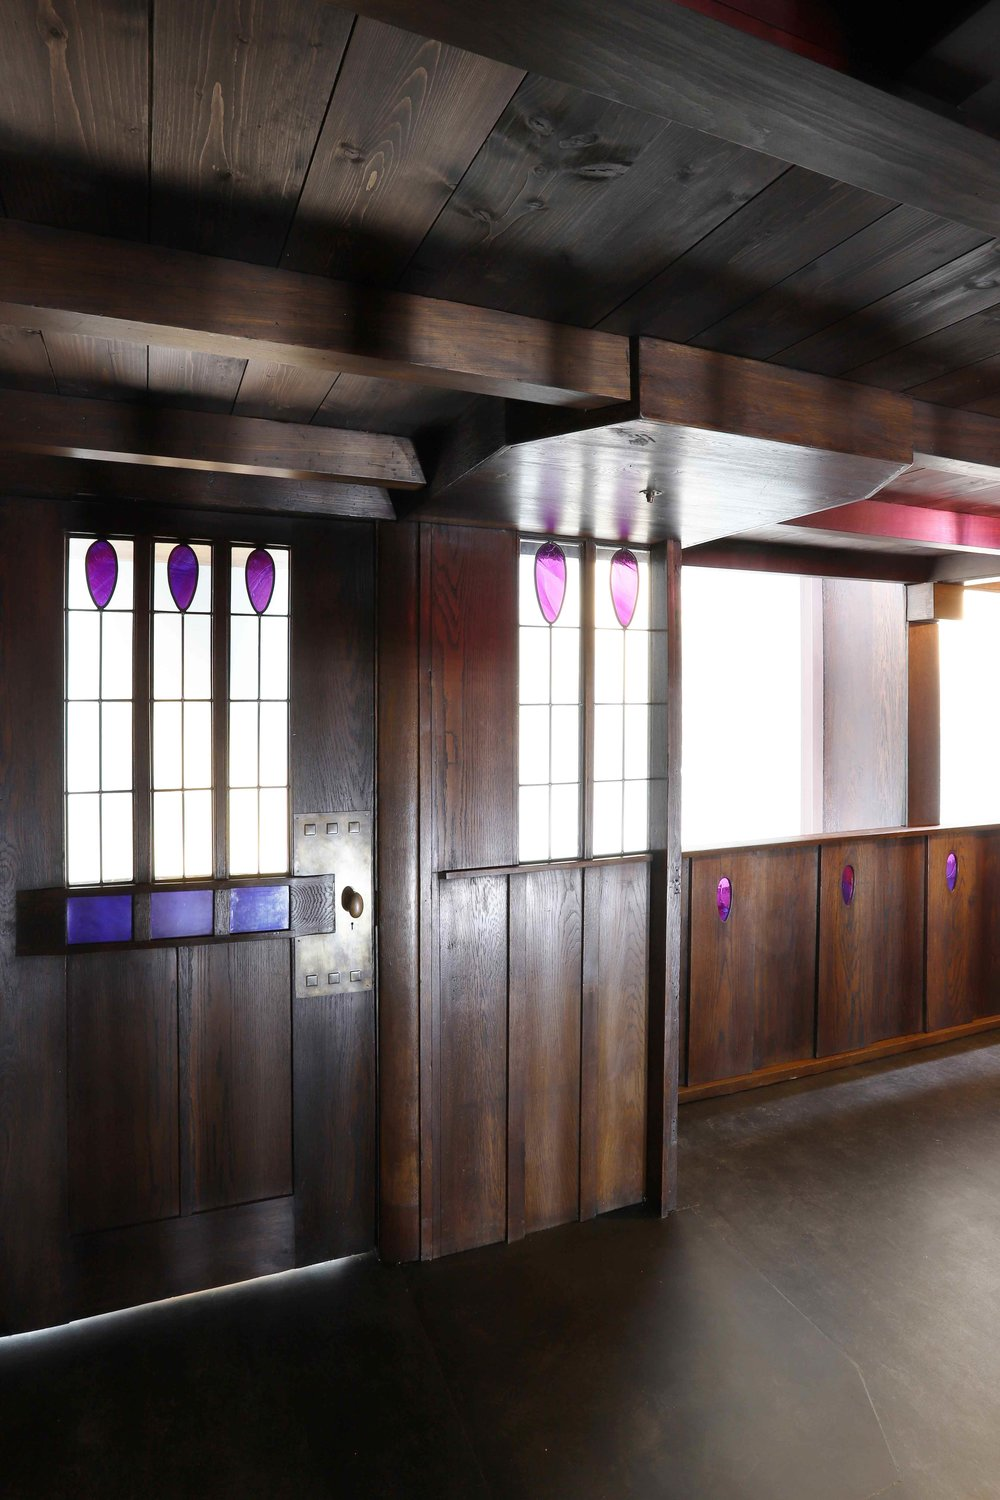 Conservation of The Oak Room, C R Mackintosh, replica stained glass elements, conserved glass and false windows, V&A Dundee.